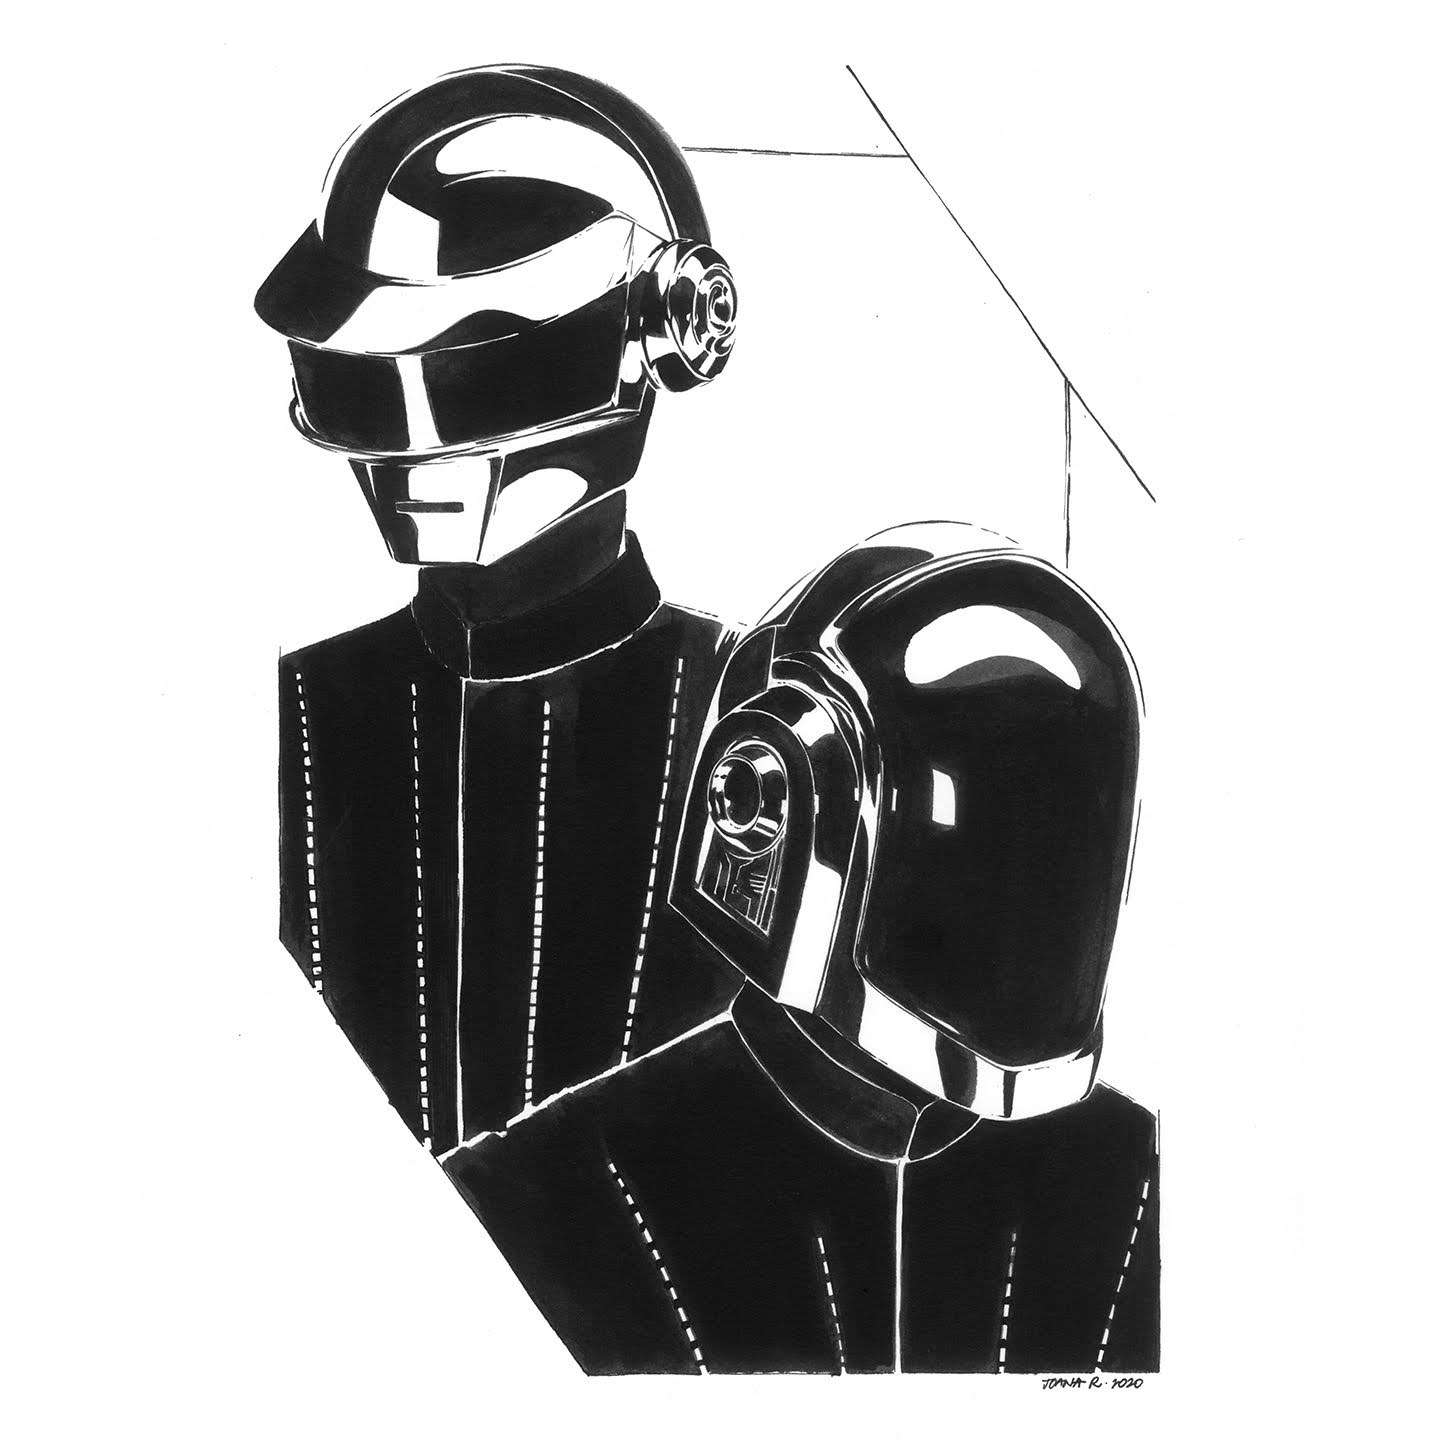 Daft Punk ink portrait by Joana Ray